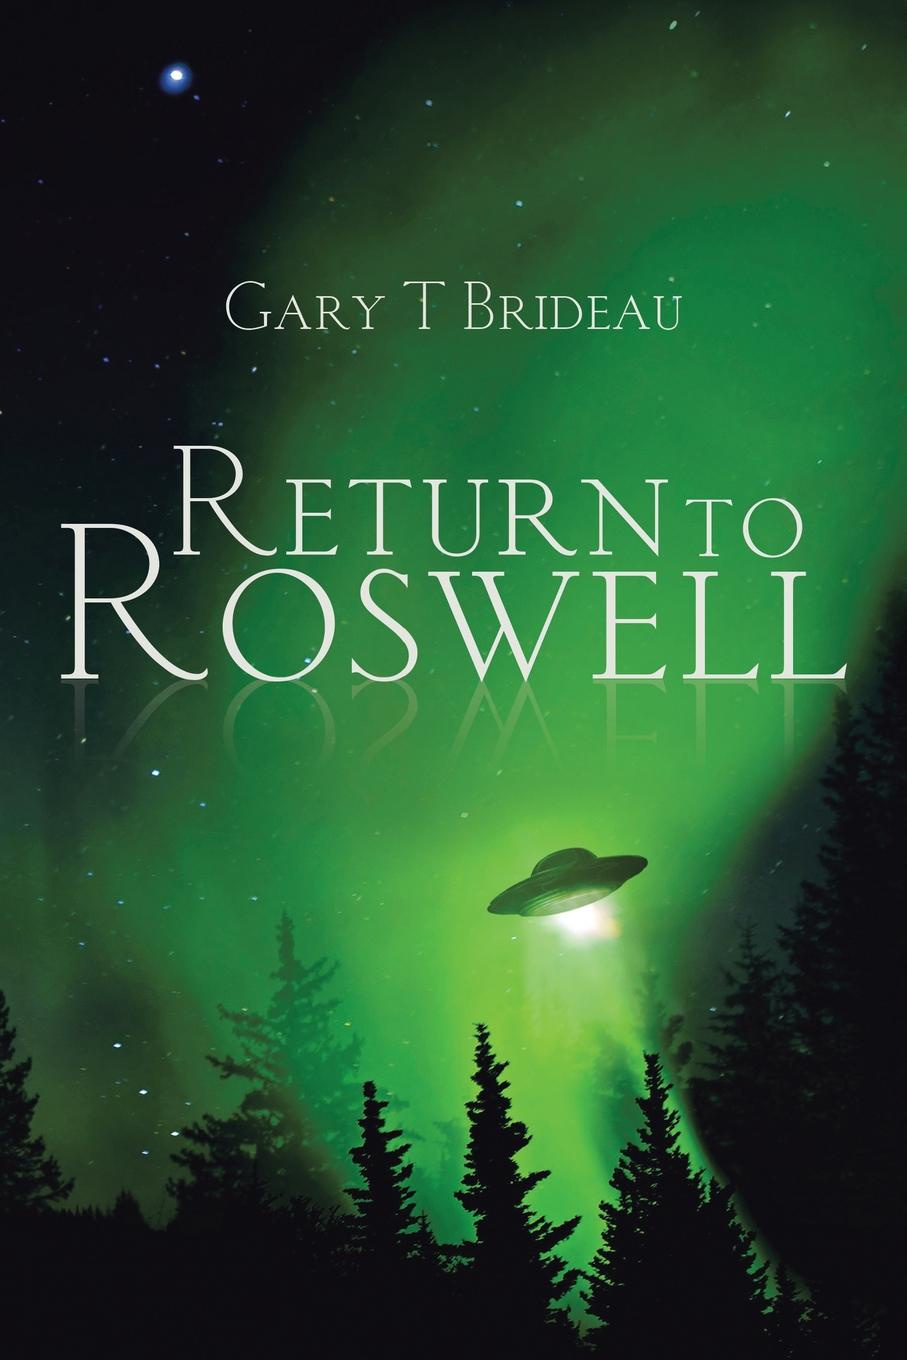 Gary T Brideau Return to Roswell